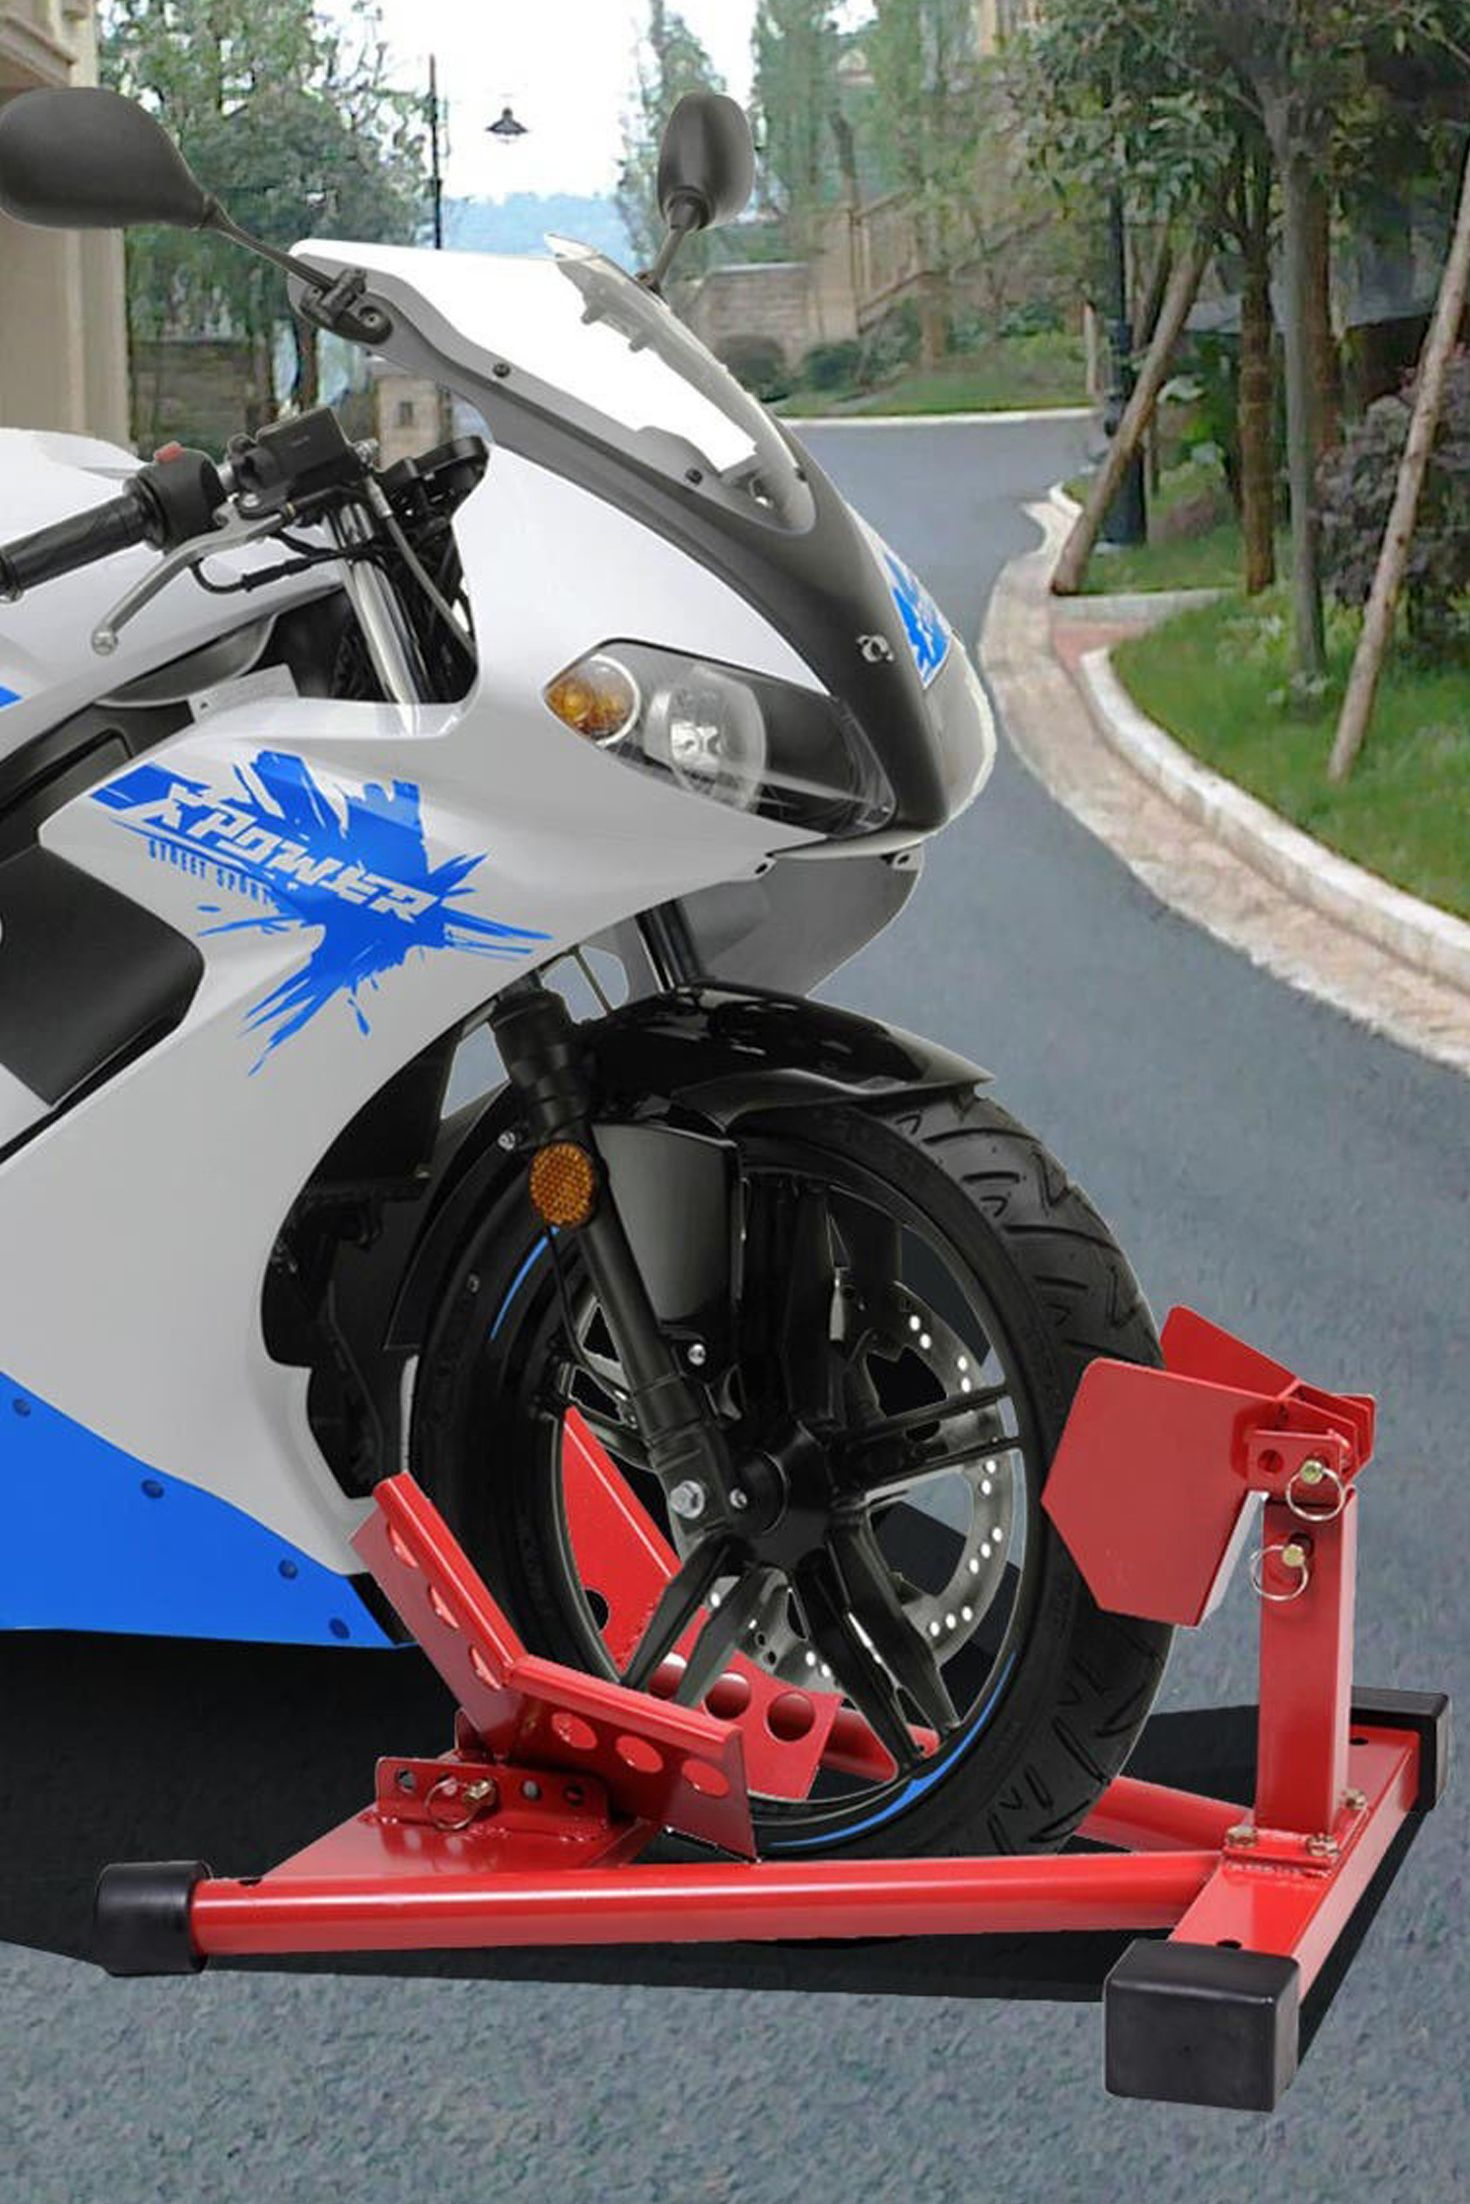 This Is Our Motorcycle Wheel Chock Stand Which Is Designed For Securing Motorcycles Upright For Transporting, Maintenance, And Storage.